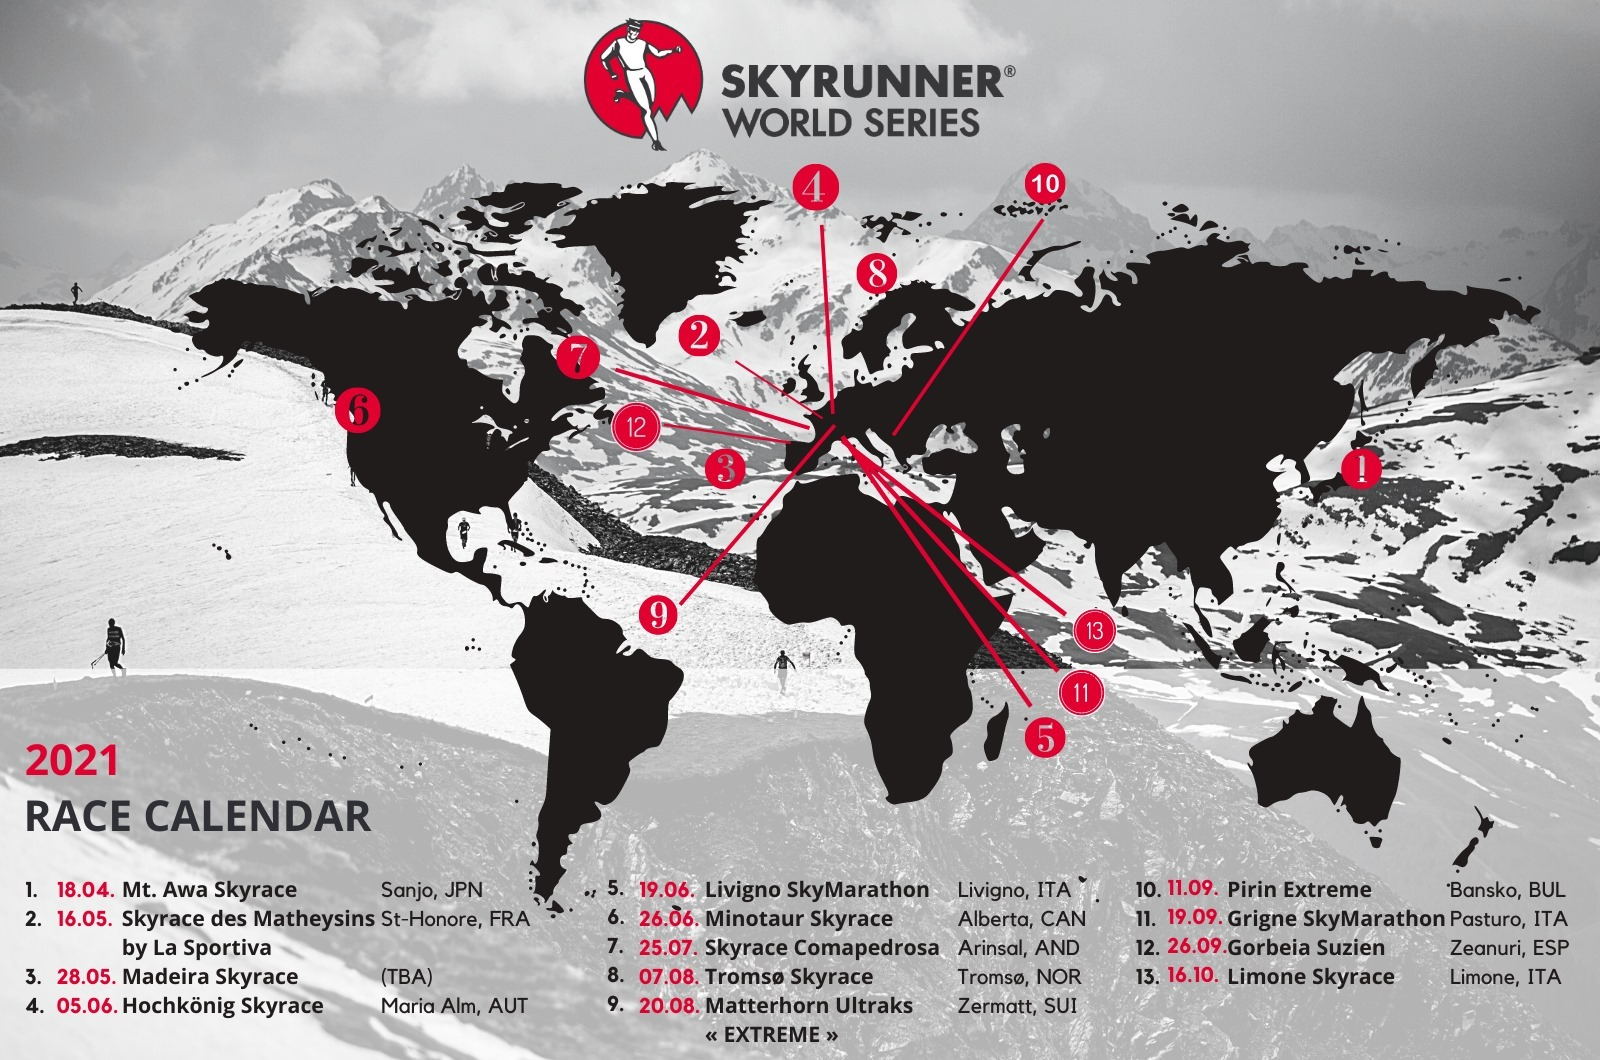 Skyrunner® World Series 2021